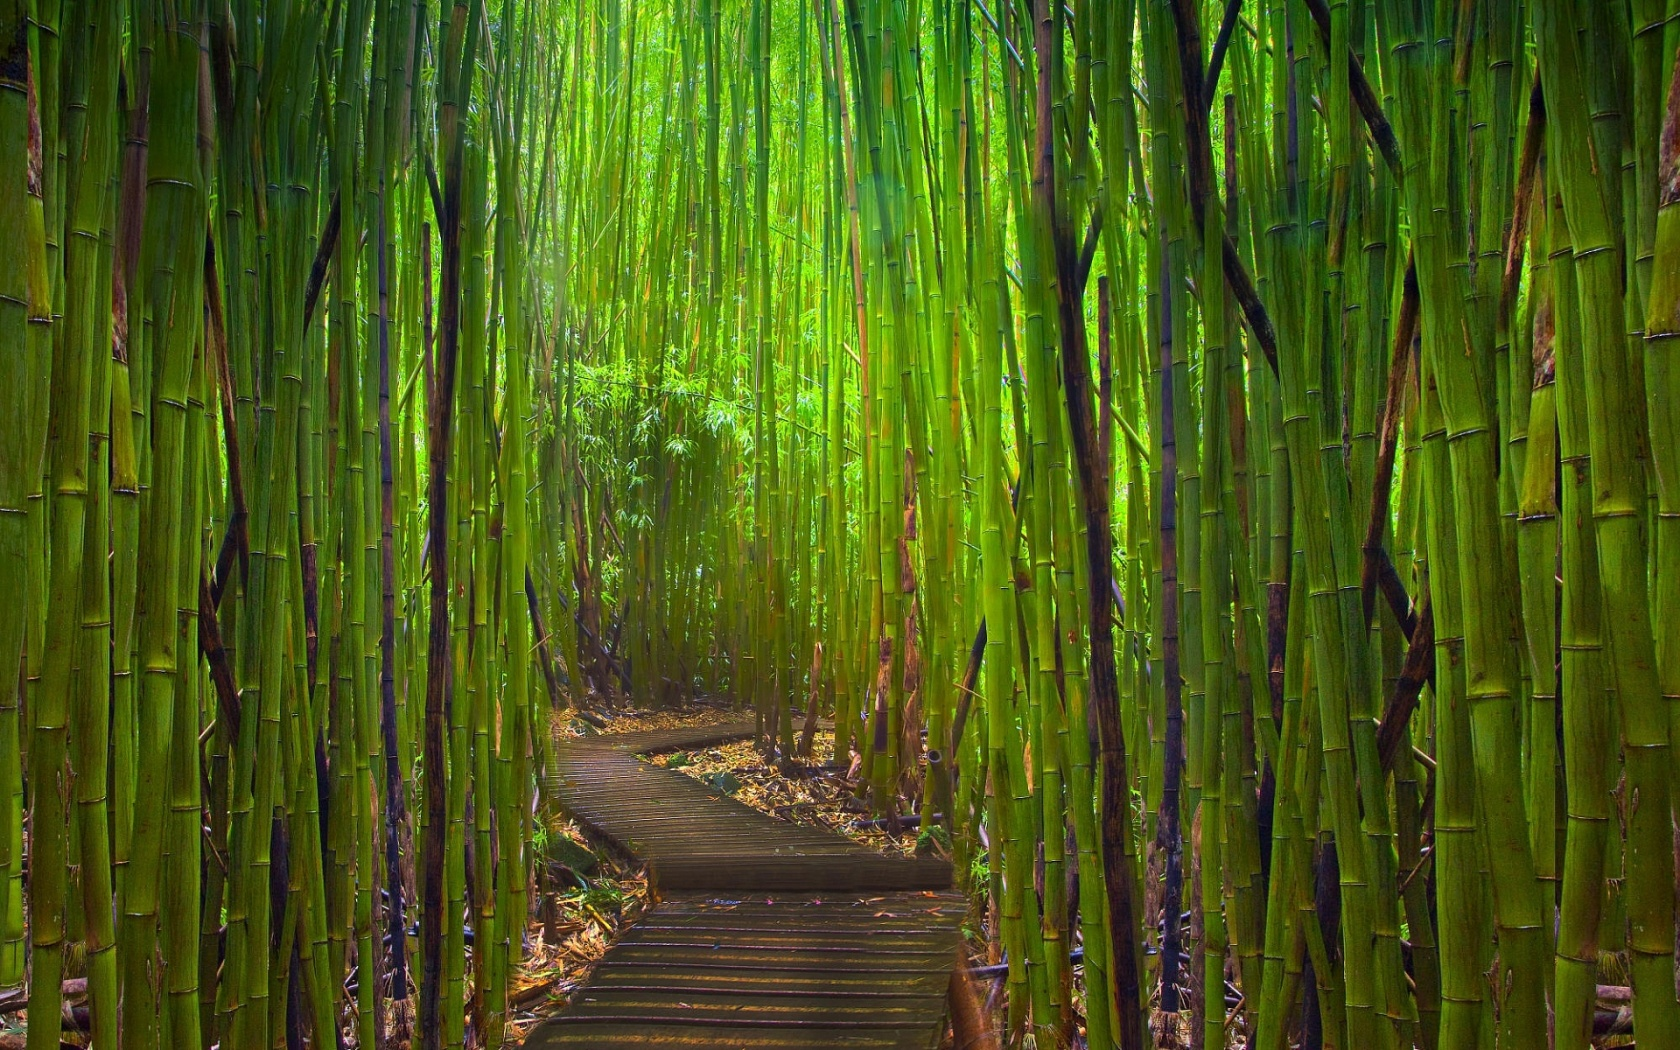 bamboo wallpaper by doantrangnguyen - photo #7